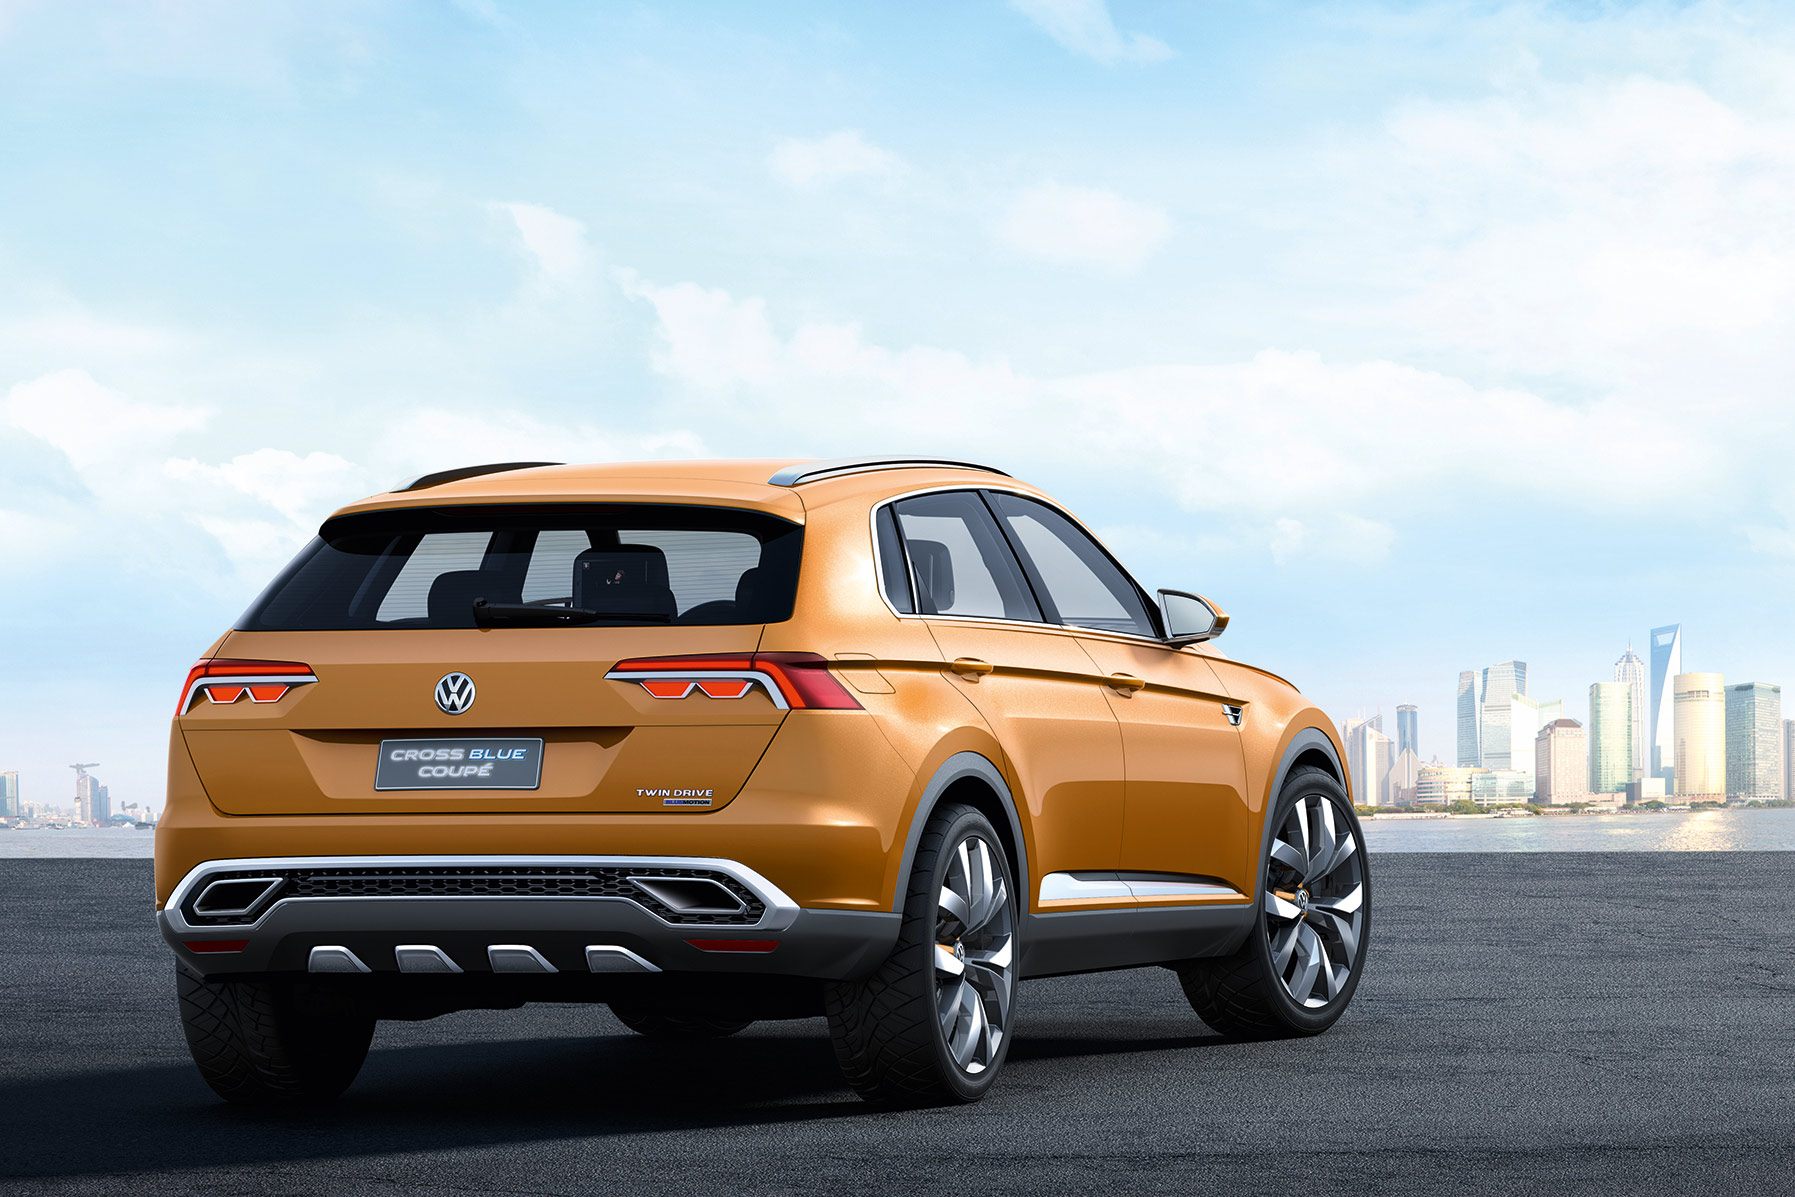 volkswagen-crossblue-coupe-concept-008